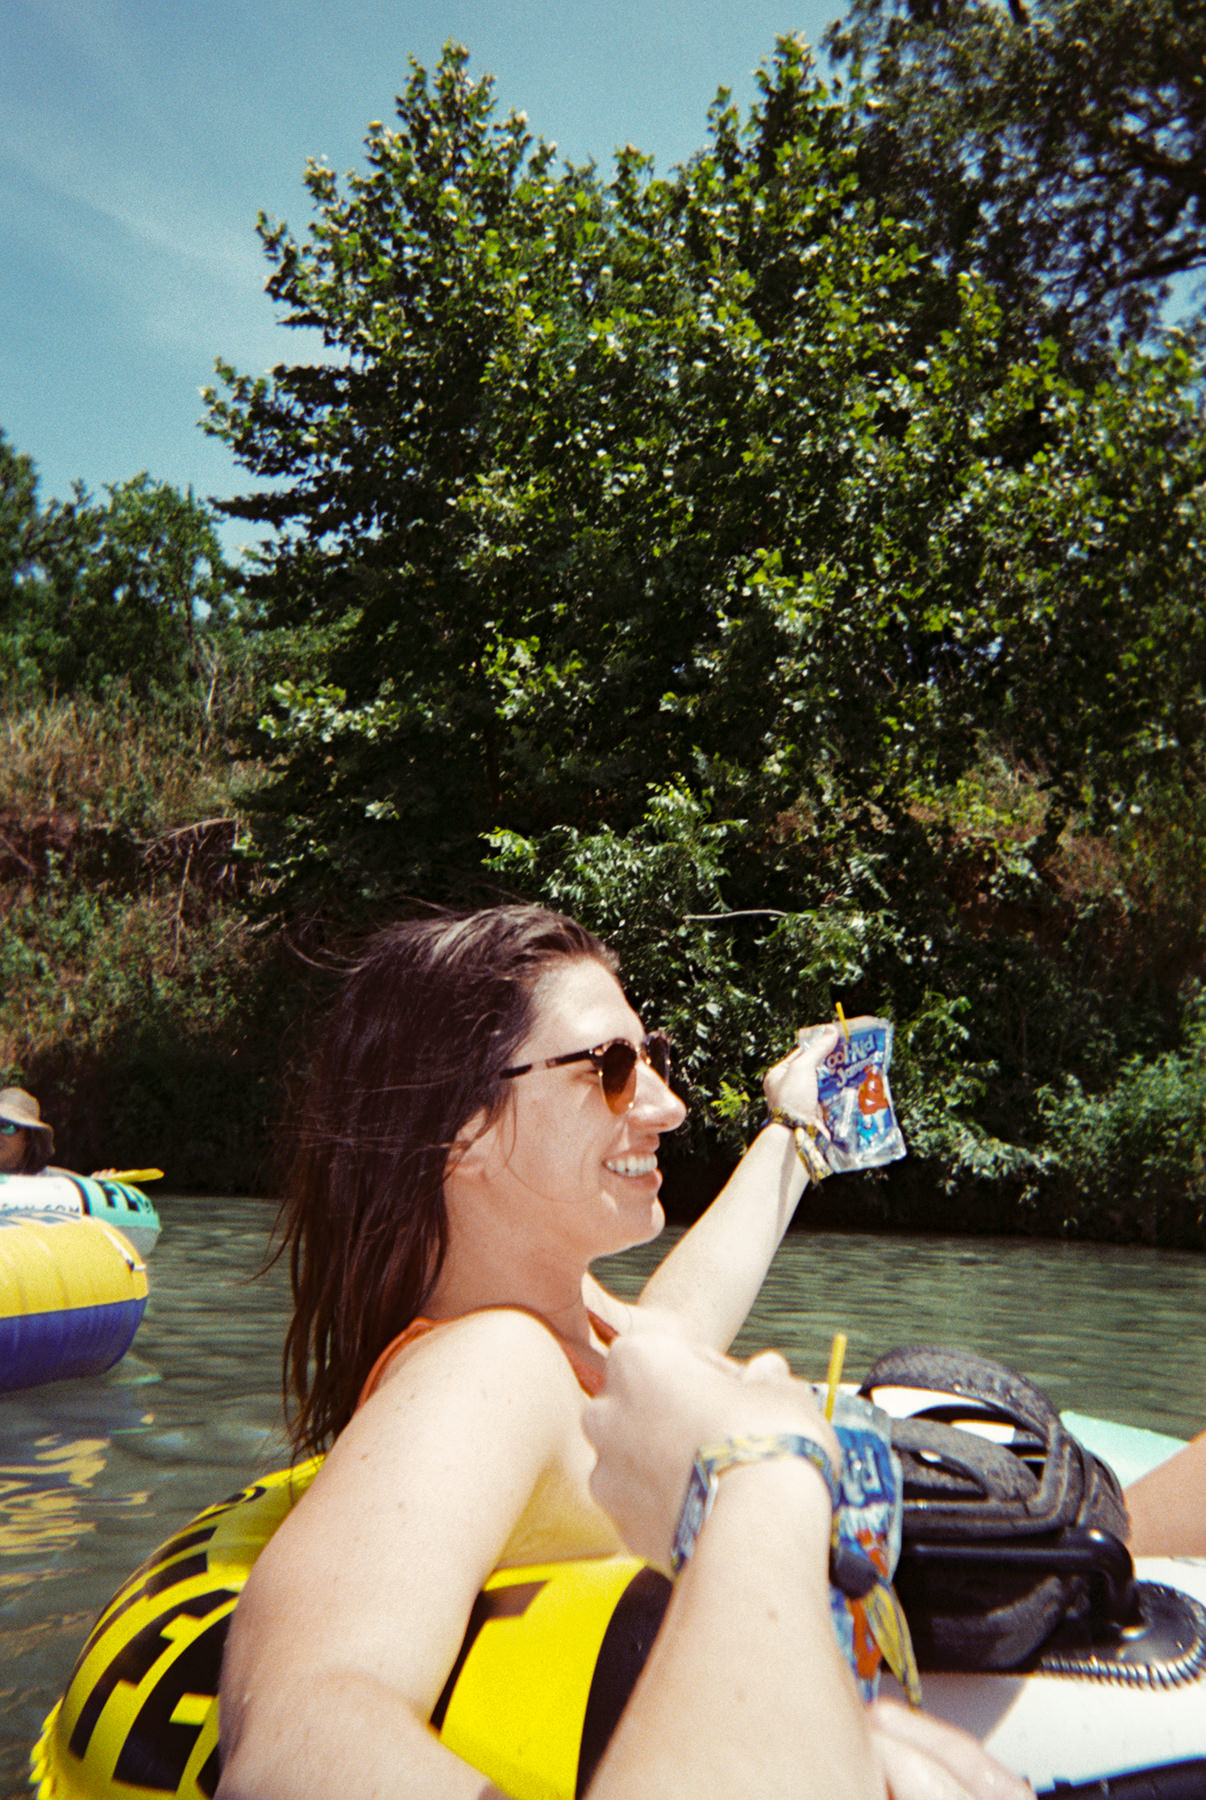 180728-kirby-gladstein-photograpy-Float-Fest-Fuji-disposable-021.jpg